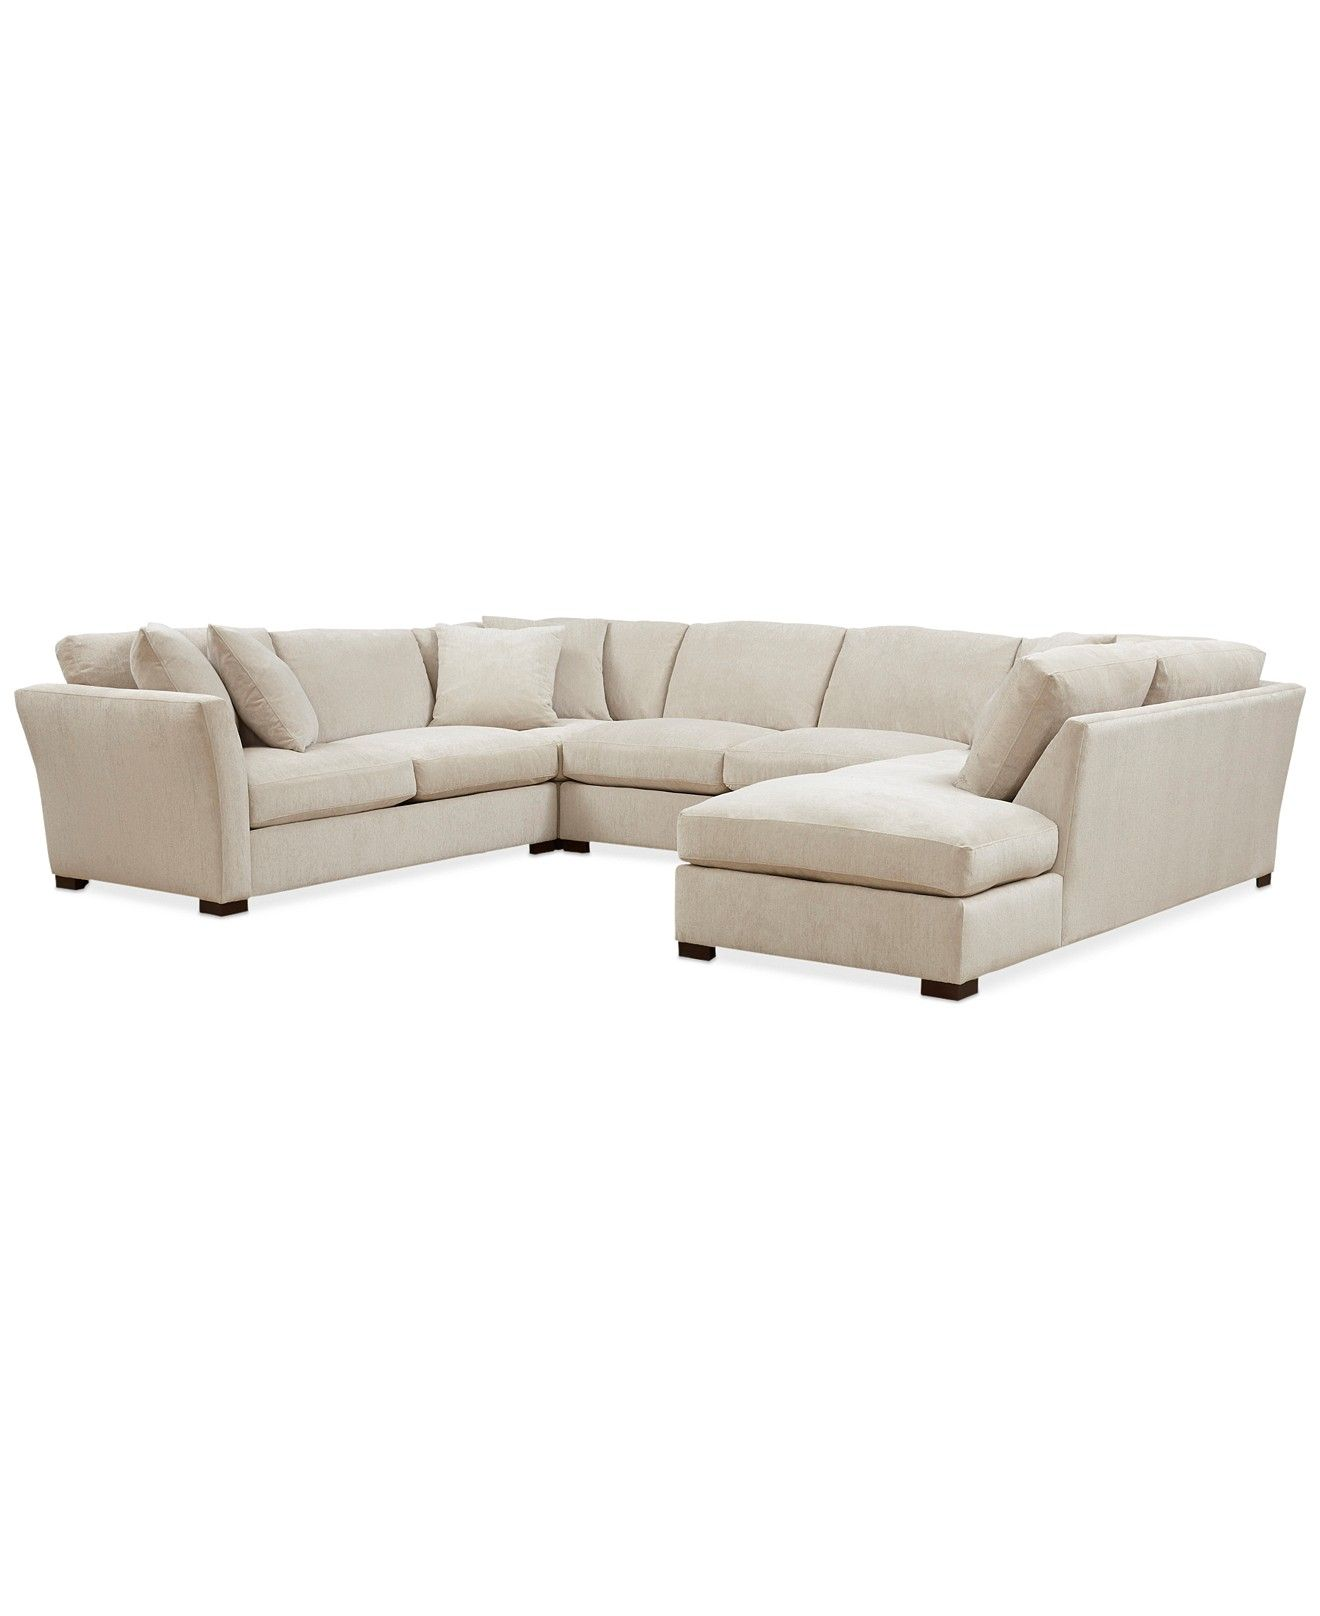 Myles Fabric 4 Piece Daybed Sectional Sofa Sectional Sofas